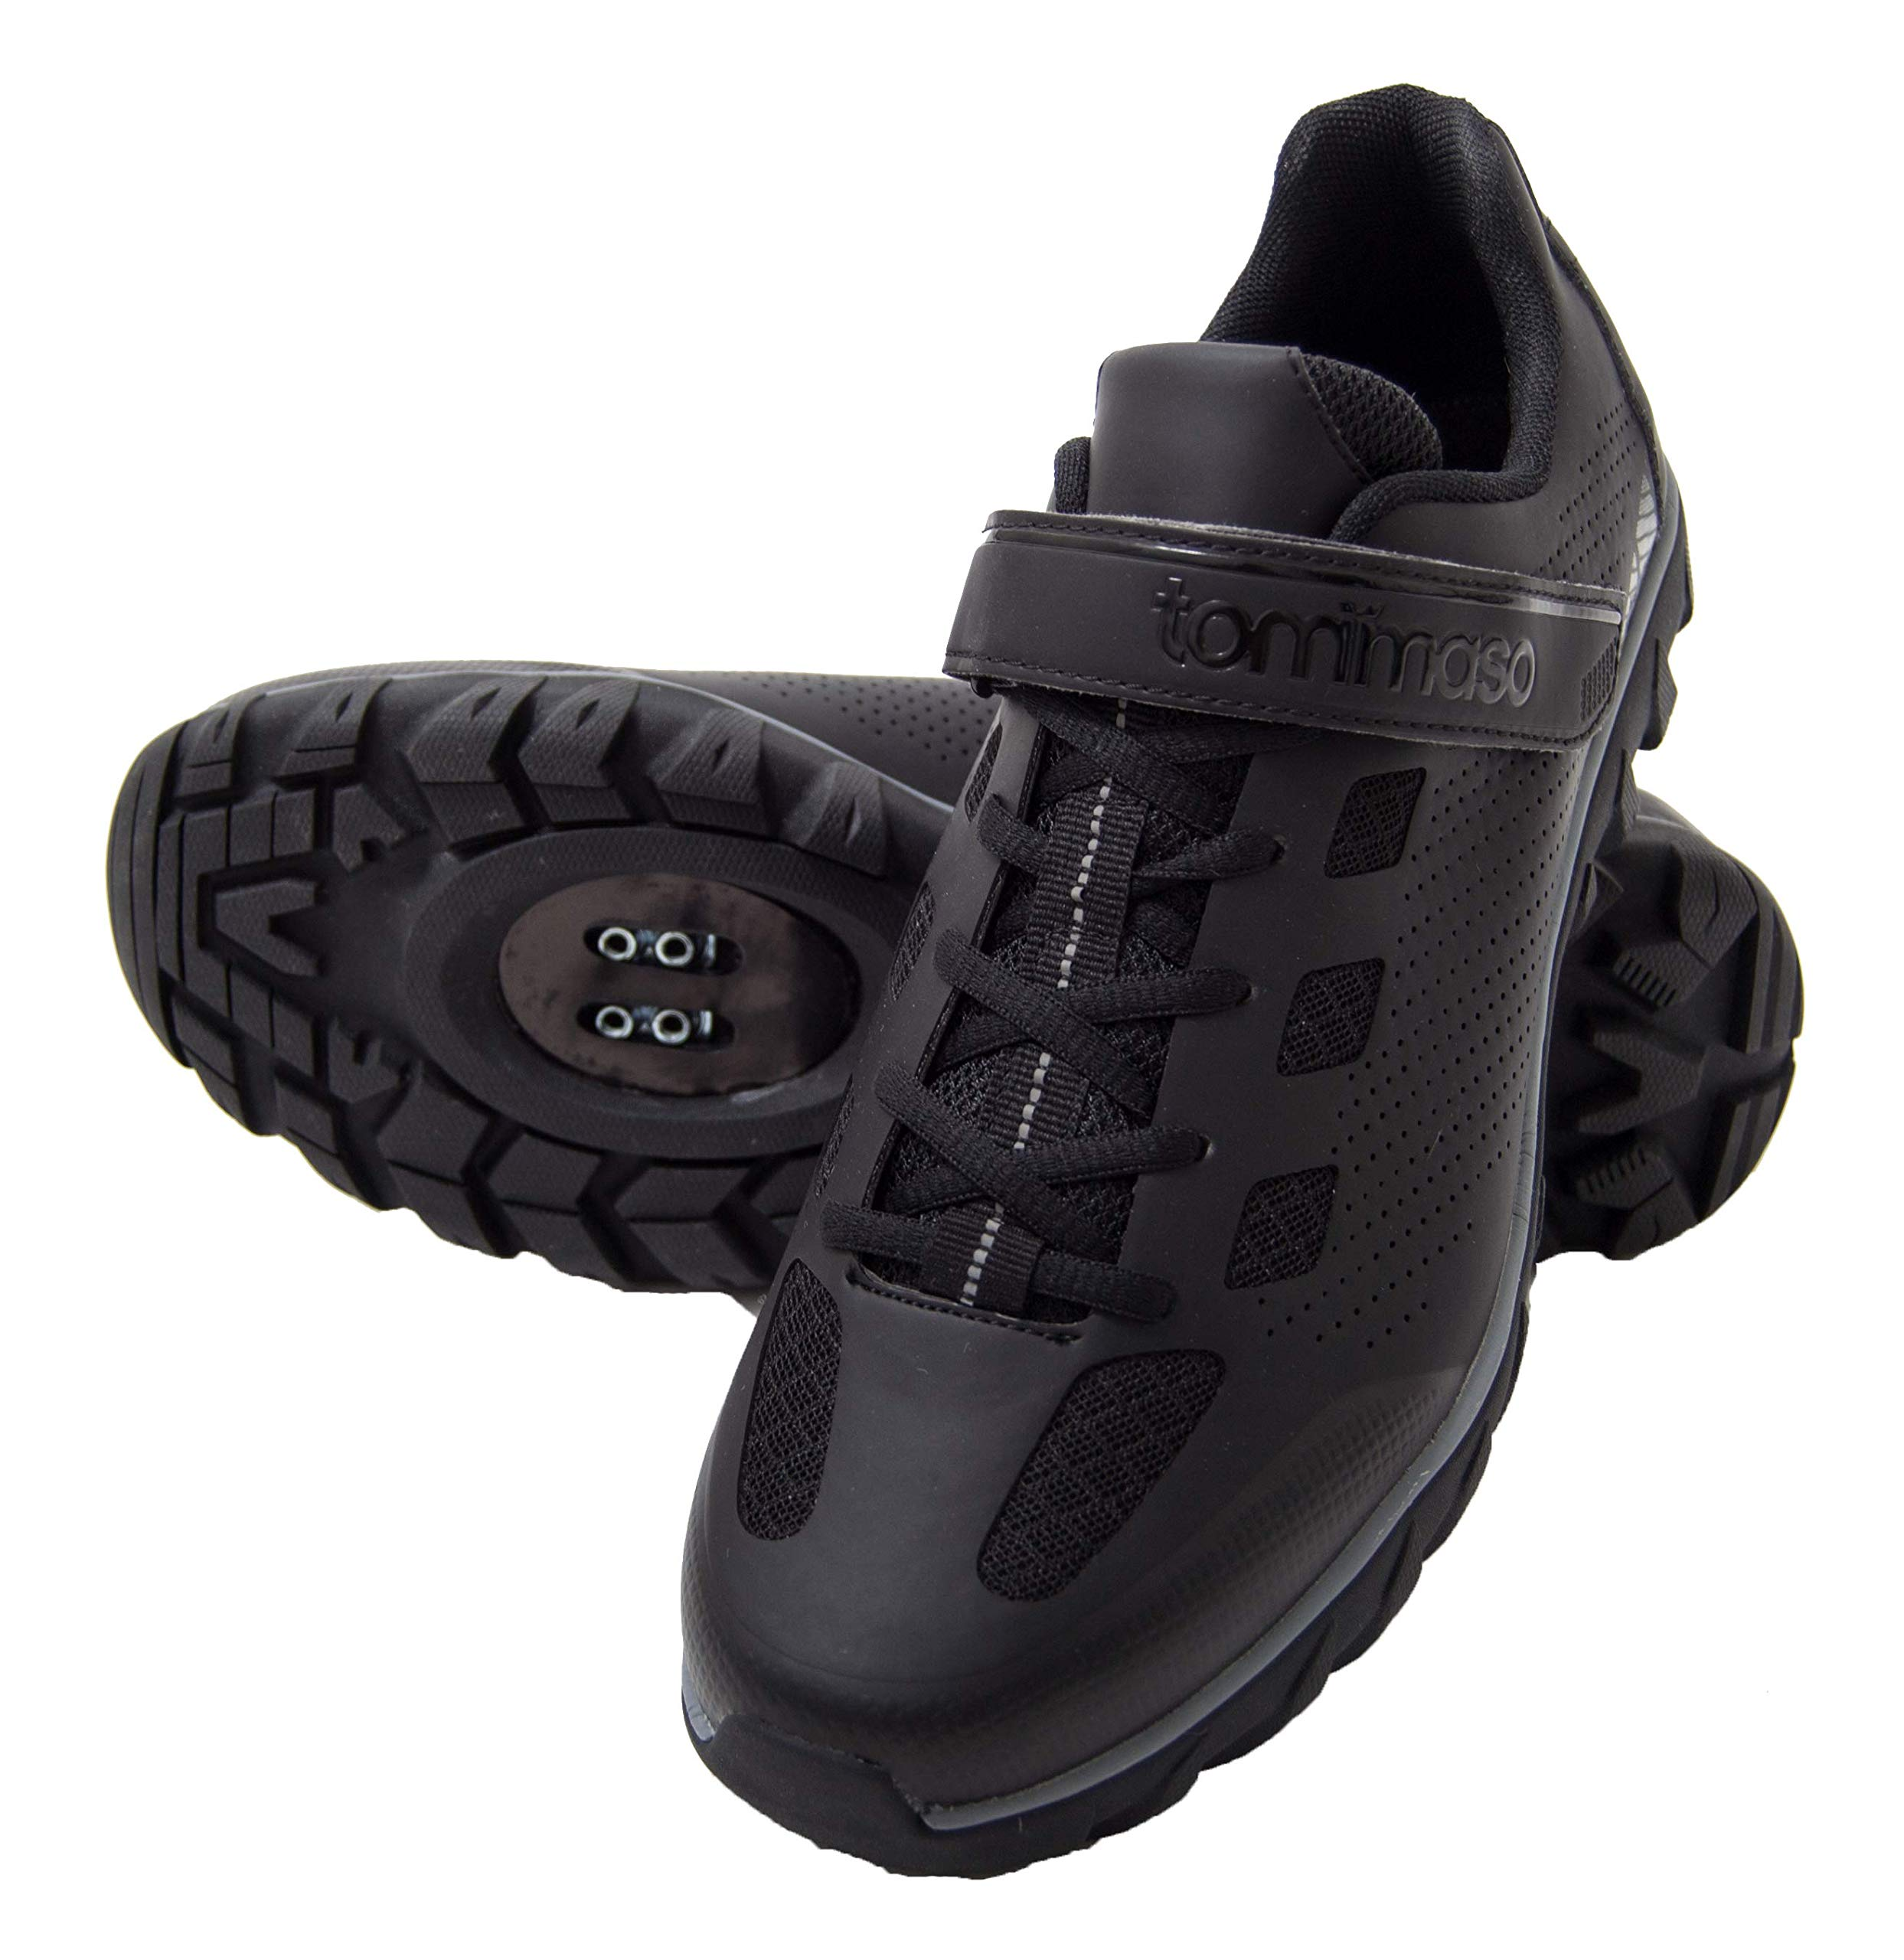 tommaso Roma - Shoe of The Month - Men's Urban Commuter, Spinning, Multi-Use Cycling Shoes - 43 Black/Grey by tommaso